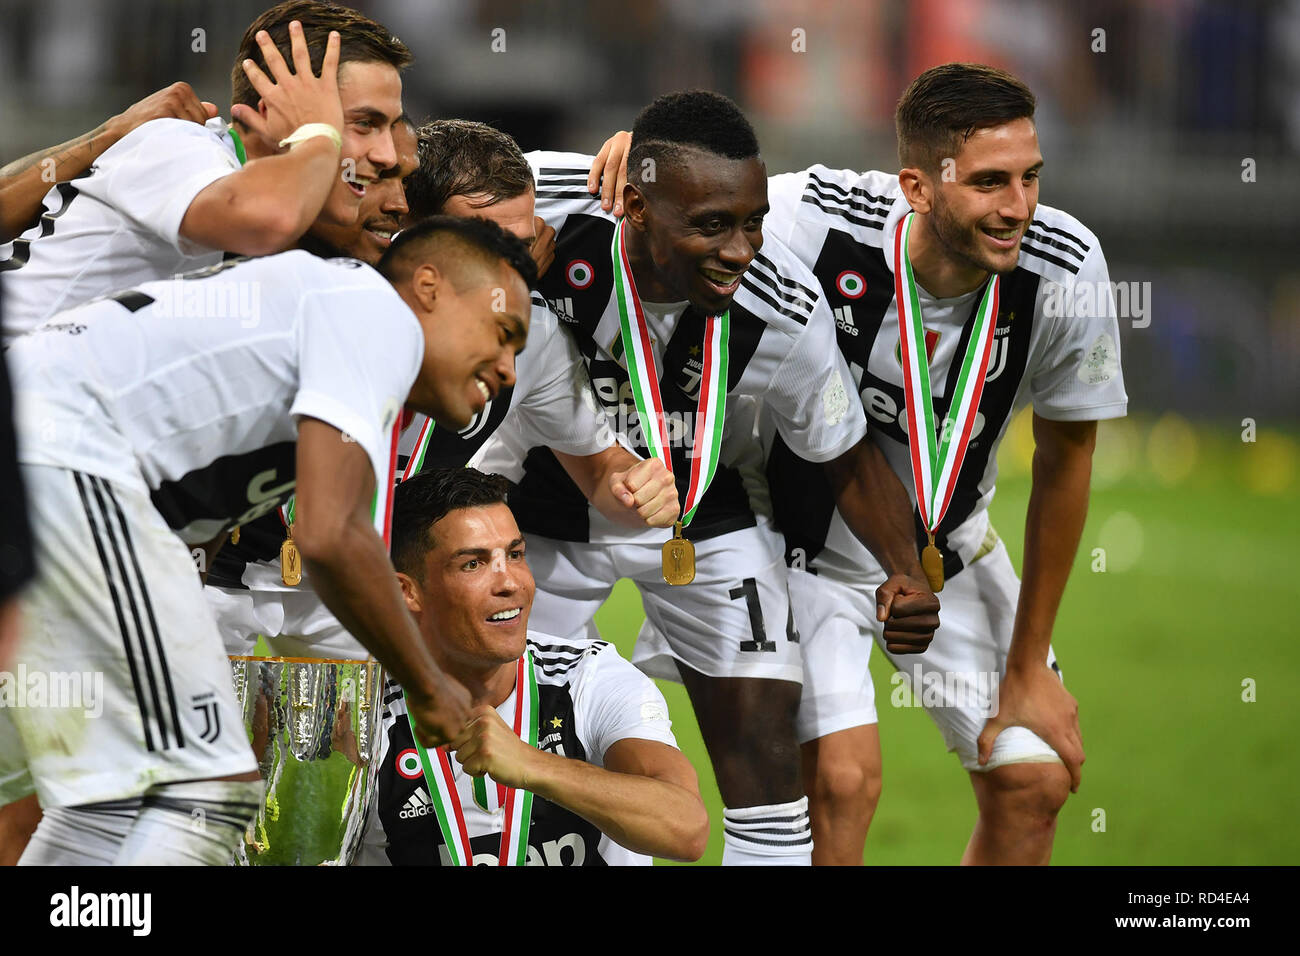 Jeddah, Saudi Arabia. 16th Jan, 2019. Juventus players celebrate with a trophy after wining the Italian Super Cup final soccer match between Juventus and AC Milan at the King Abdullah Sports City Stadium. Credit: -/dpa/Alamy Live News - Stock Image